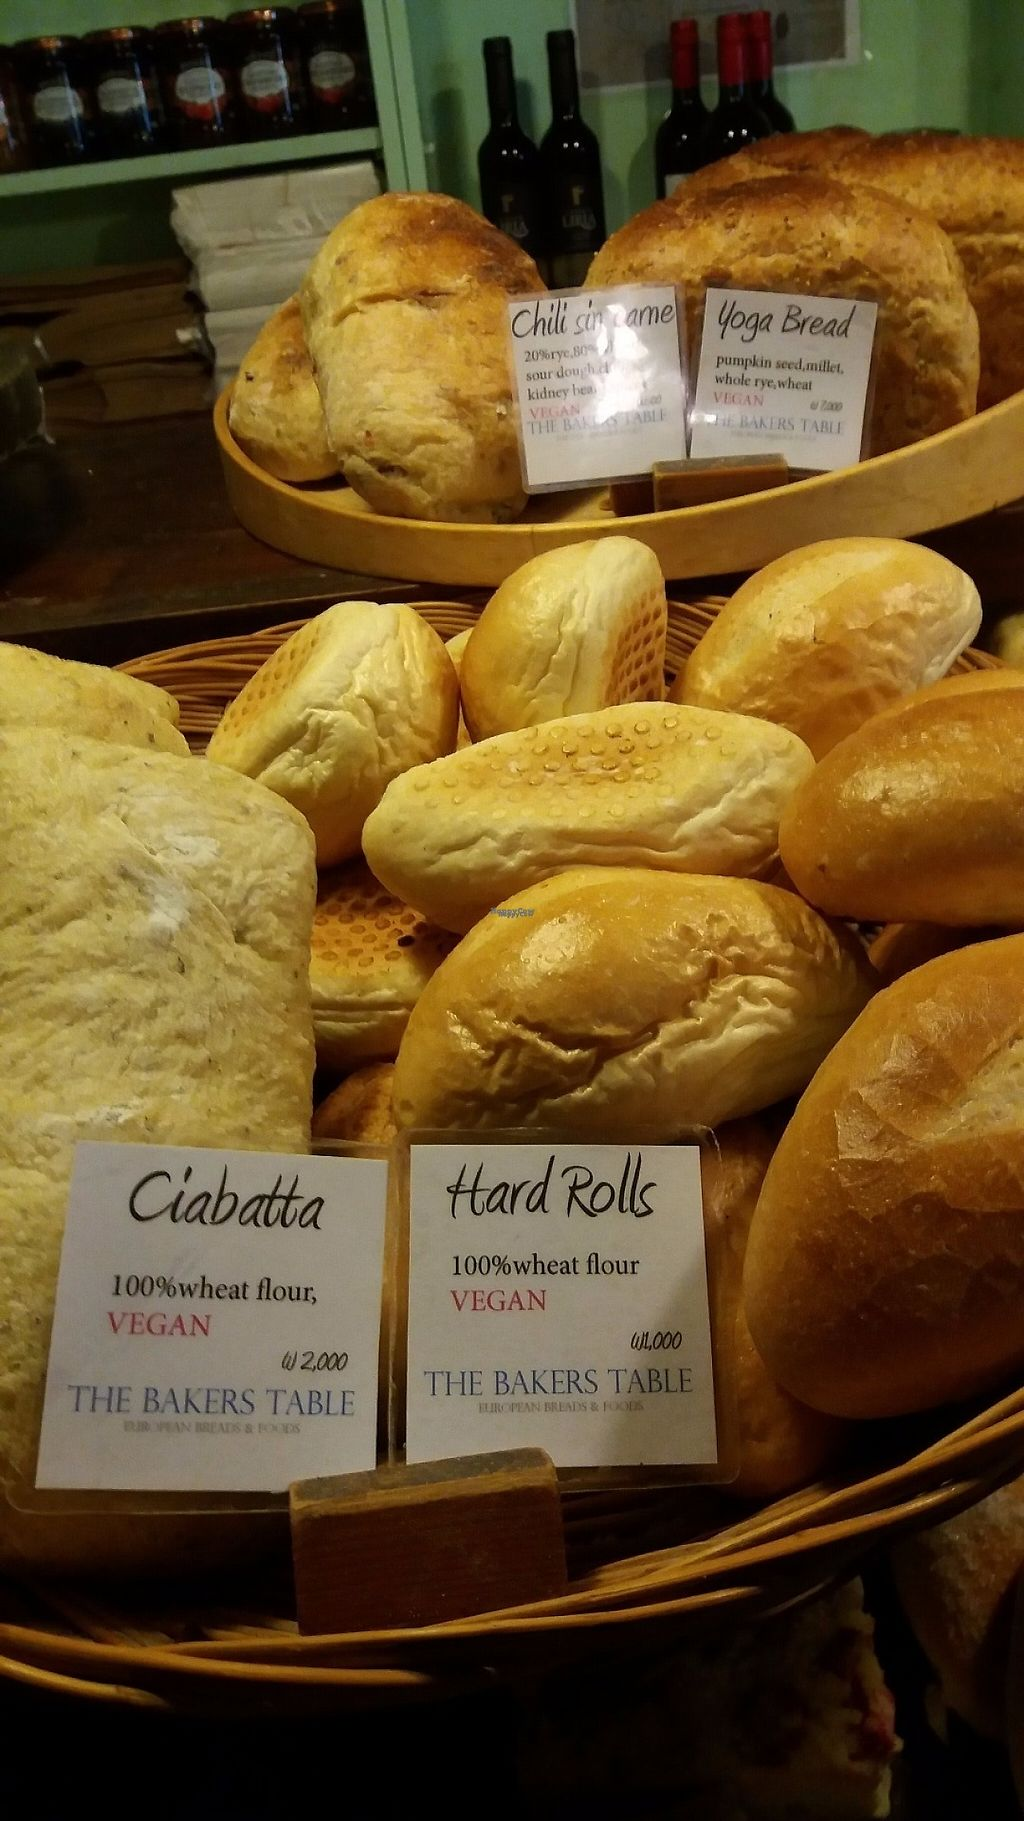 """Photo of The Bakers Table - 더베이커스테이블  by <a href=""""/members/profile/rburrke"""">rburrke</a> <br/>Fresh baked breads <br/> January 11, 2017  - <a href='/contact/abuse/image/85311/210639'>Report</a>"""